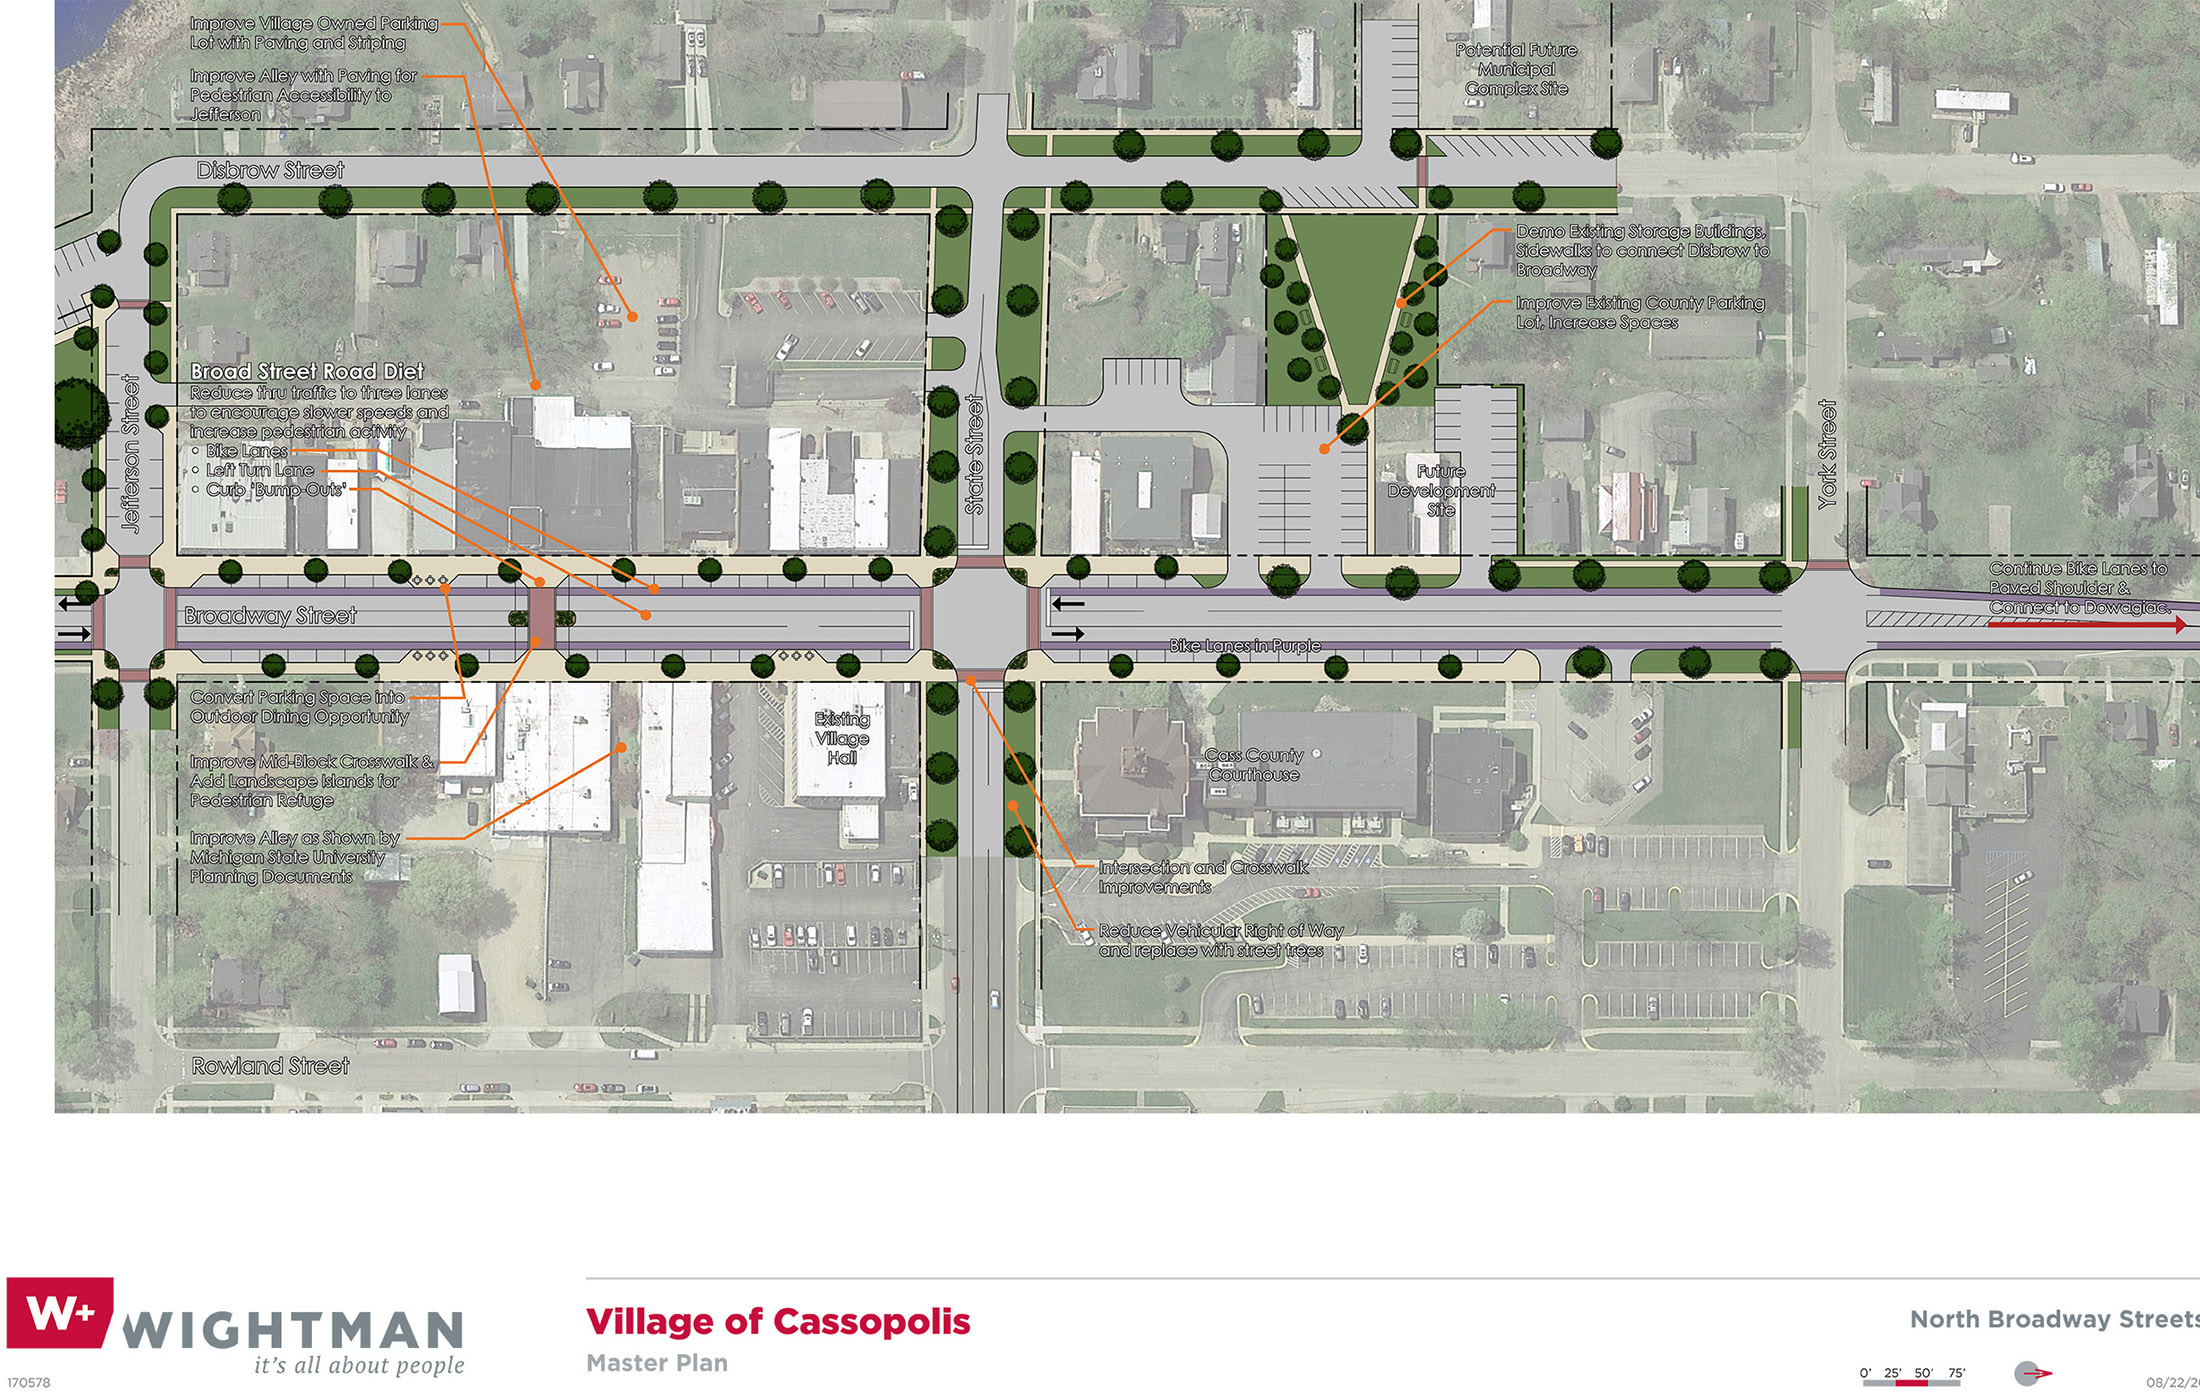 Cassopolis North Broadway Streetscape Rendering